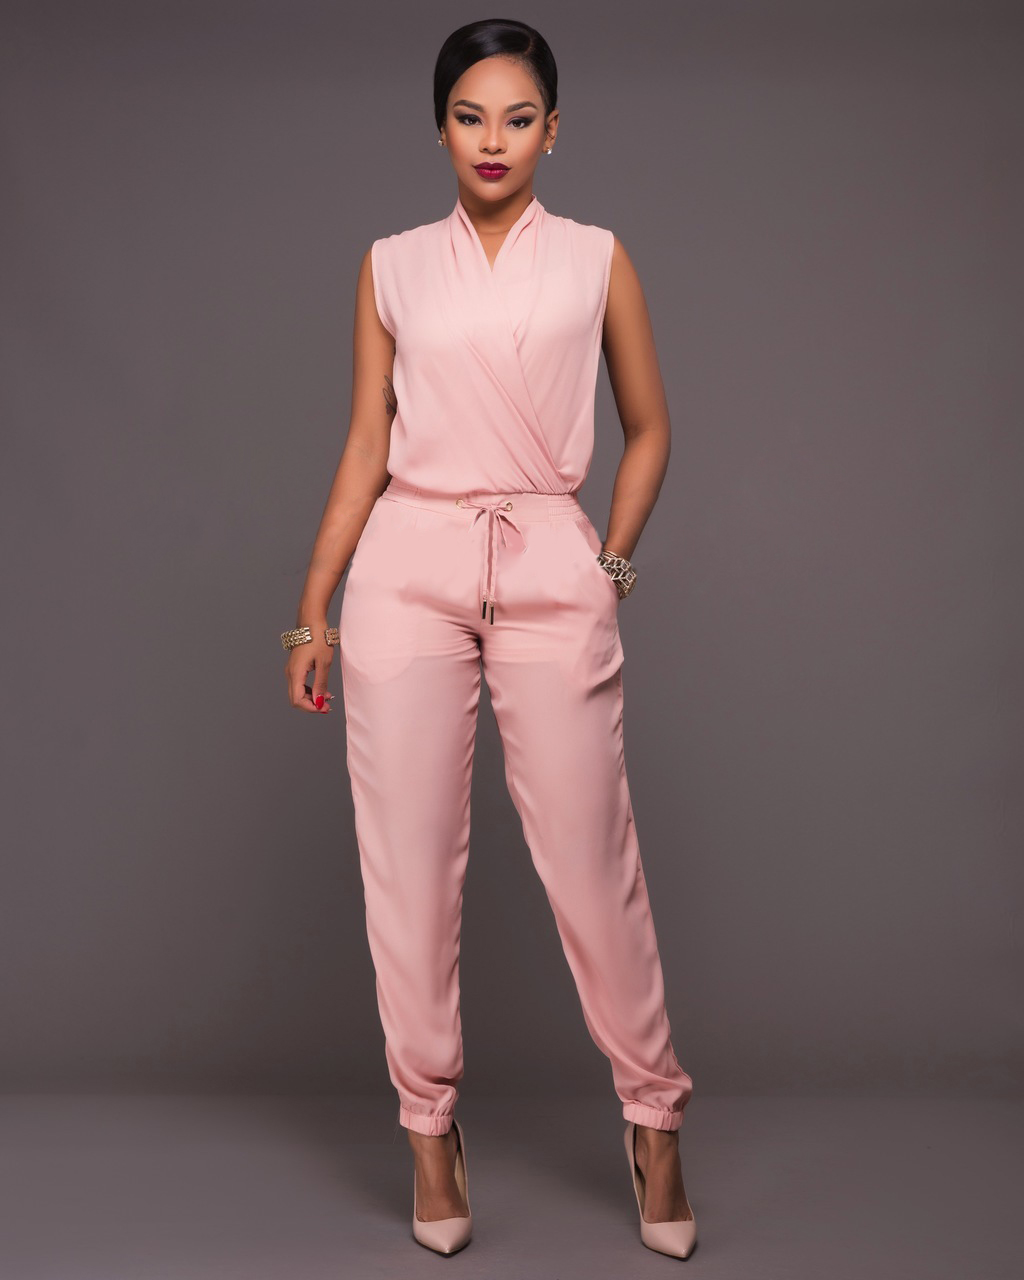 best selling huge discount shop for official Pale Pink Wrap Sleeveless Drawstring Waist Jumpsuit 25697-2